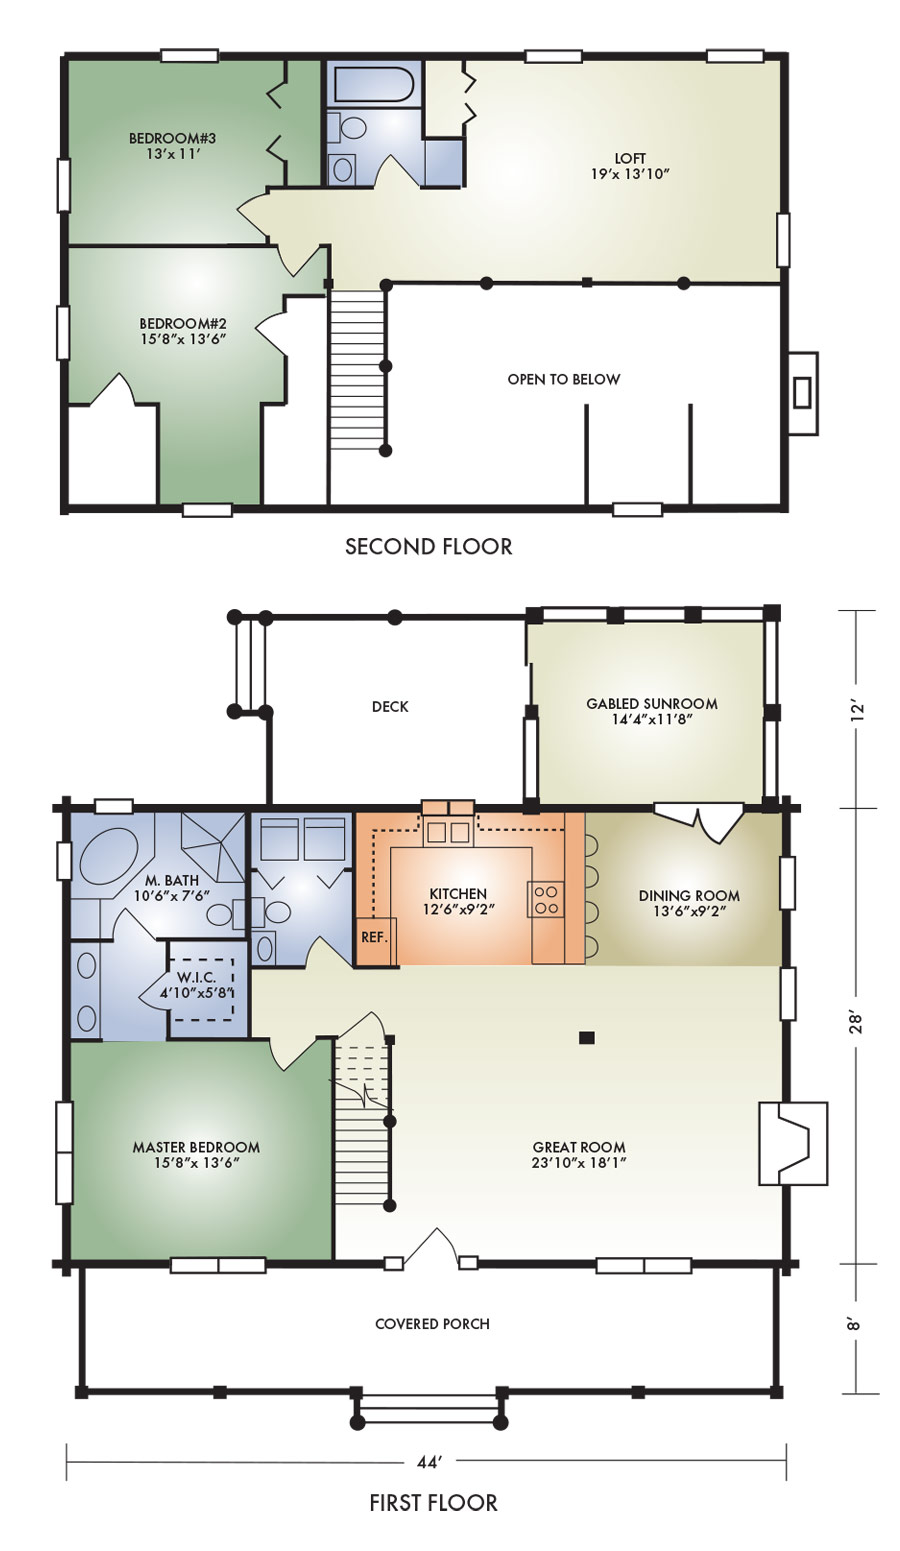 2 Bedroom Addition Floor Plans